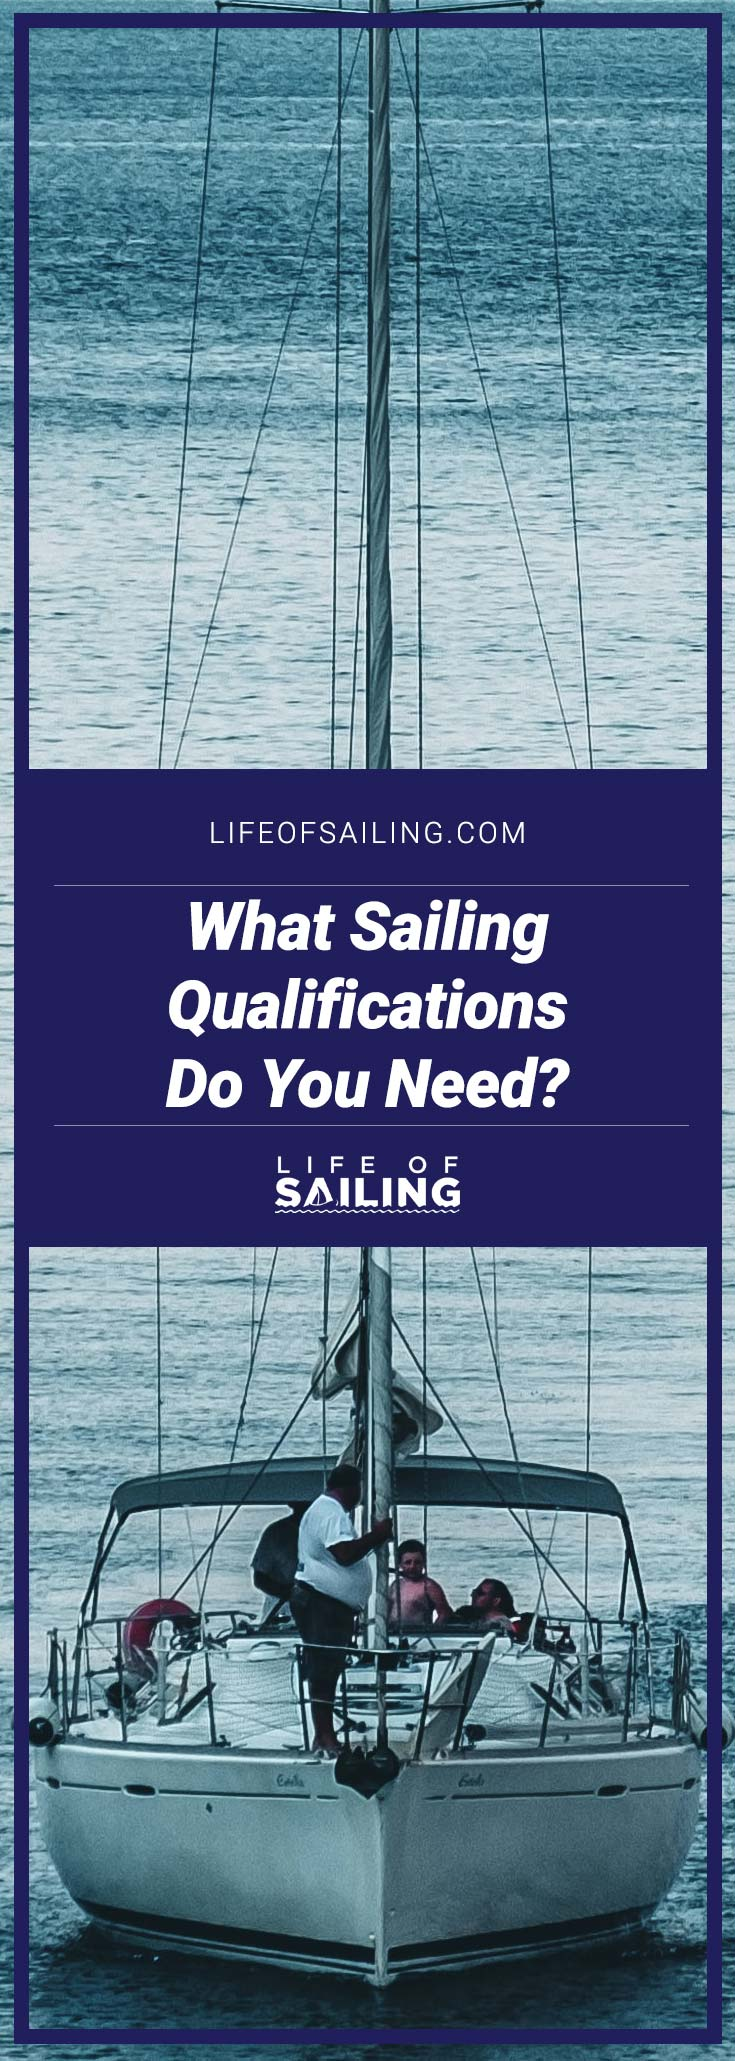 What Sailing Qualifications Do You Need?